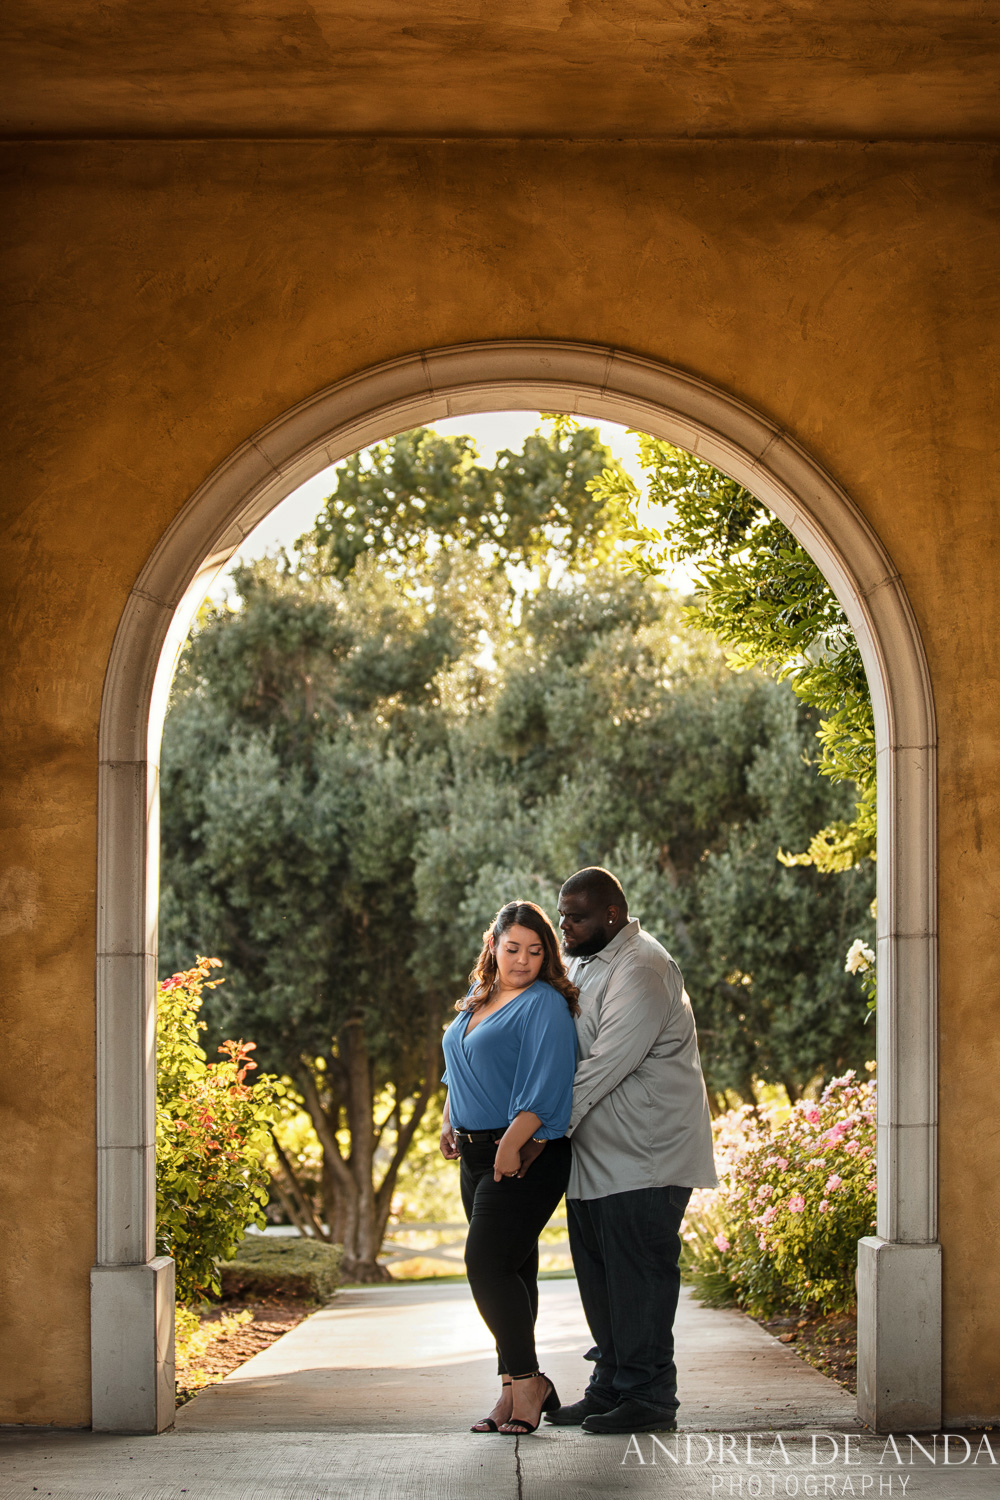 Evergreen-California-Engagement-session-Andrea-de-Anda-photography_-5.jpg